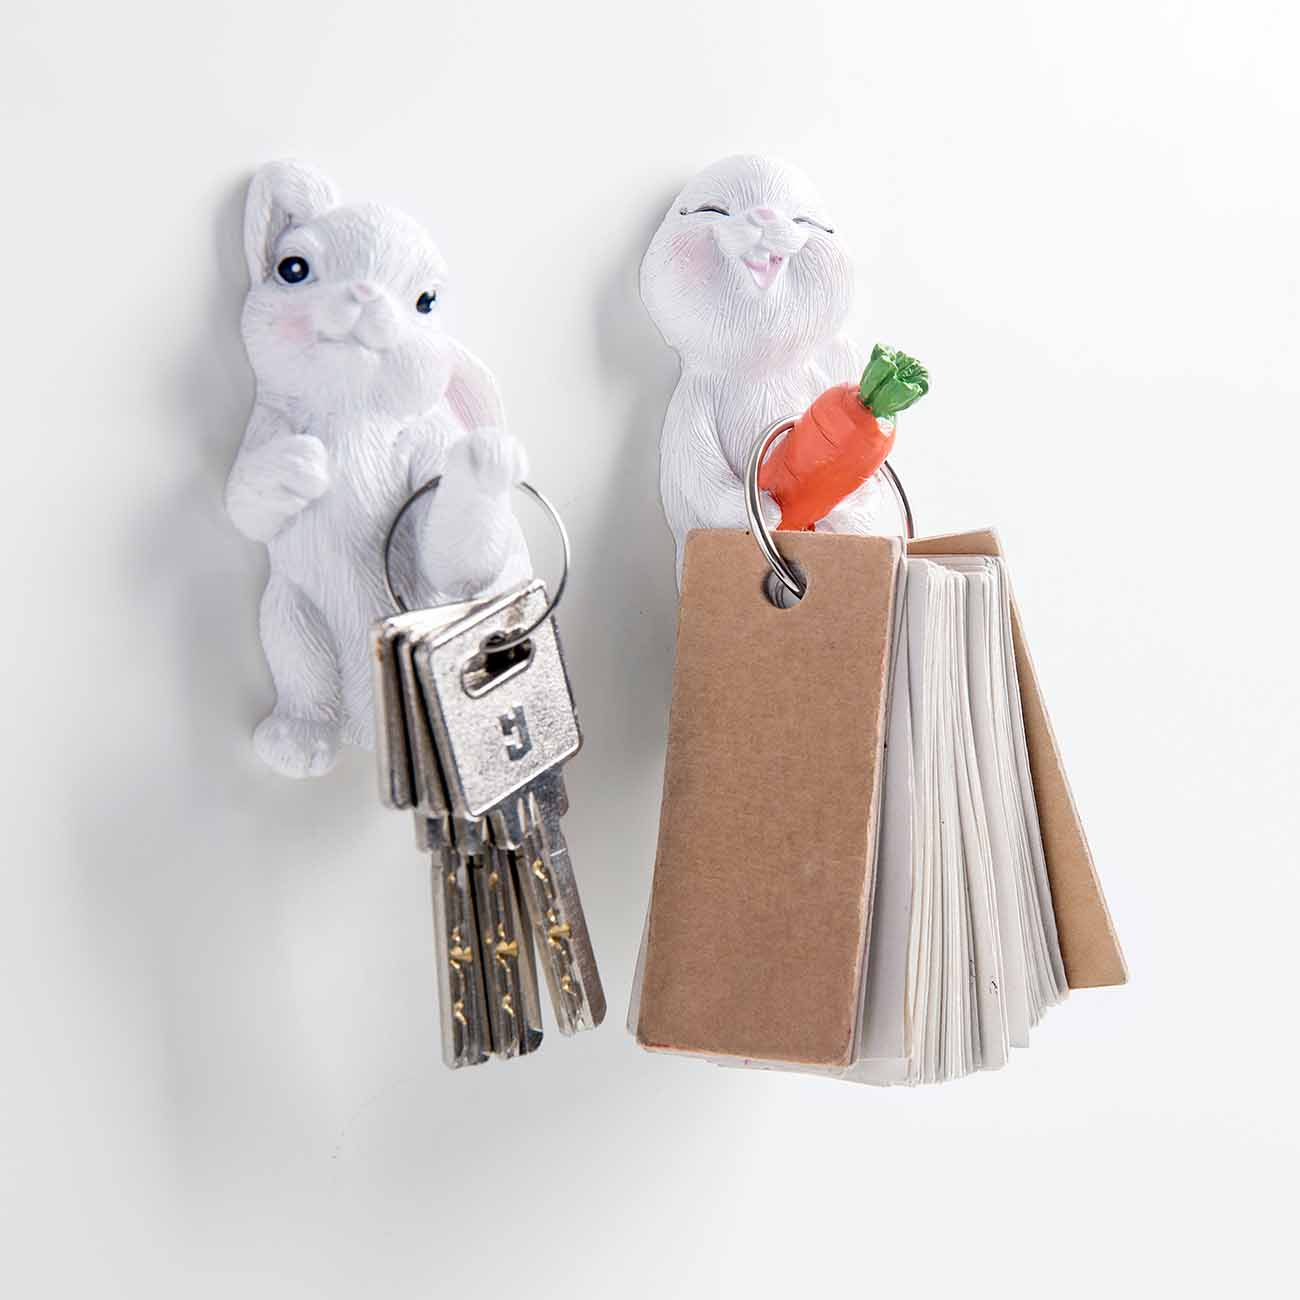 OTHERHOUSE Cute Animal-shaped Hook Key Hangers Coat Hanger Creative Rabbit Model Bathroom Wall Holder Children Room Hooks